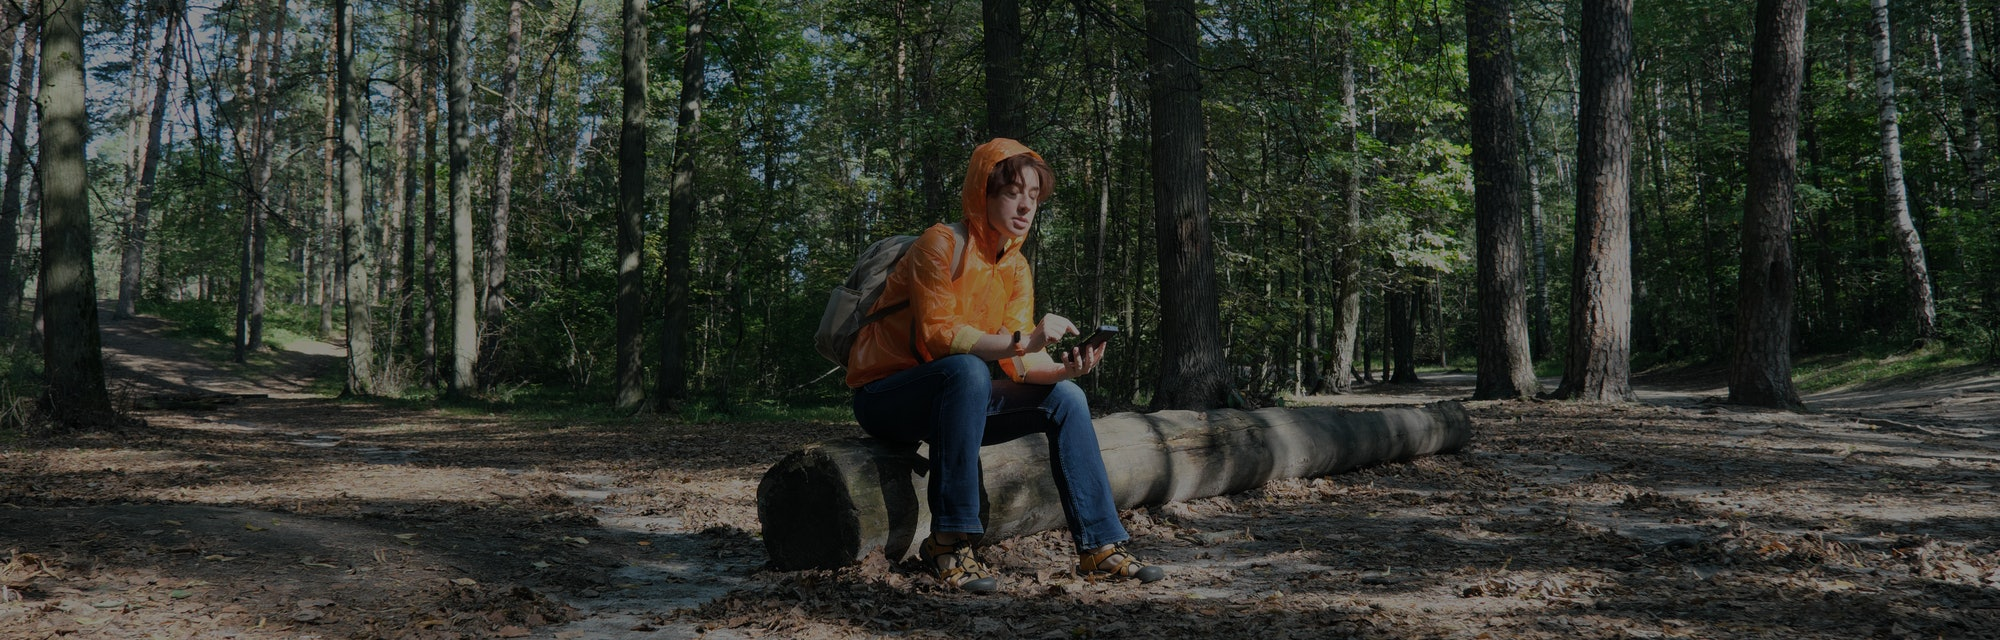 Mature woman hiking in forest is trying to get the direction using GPS in her smart phone